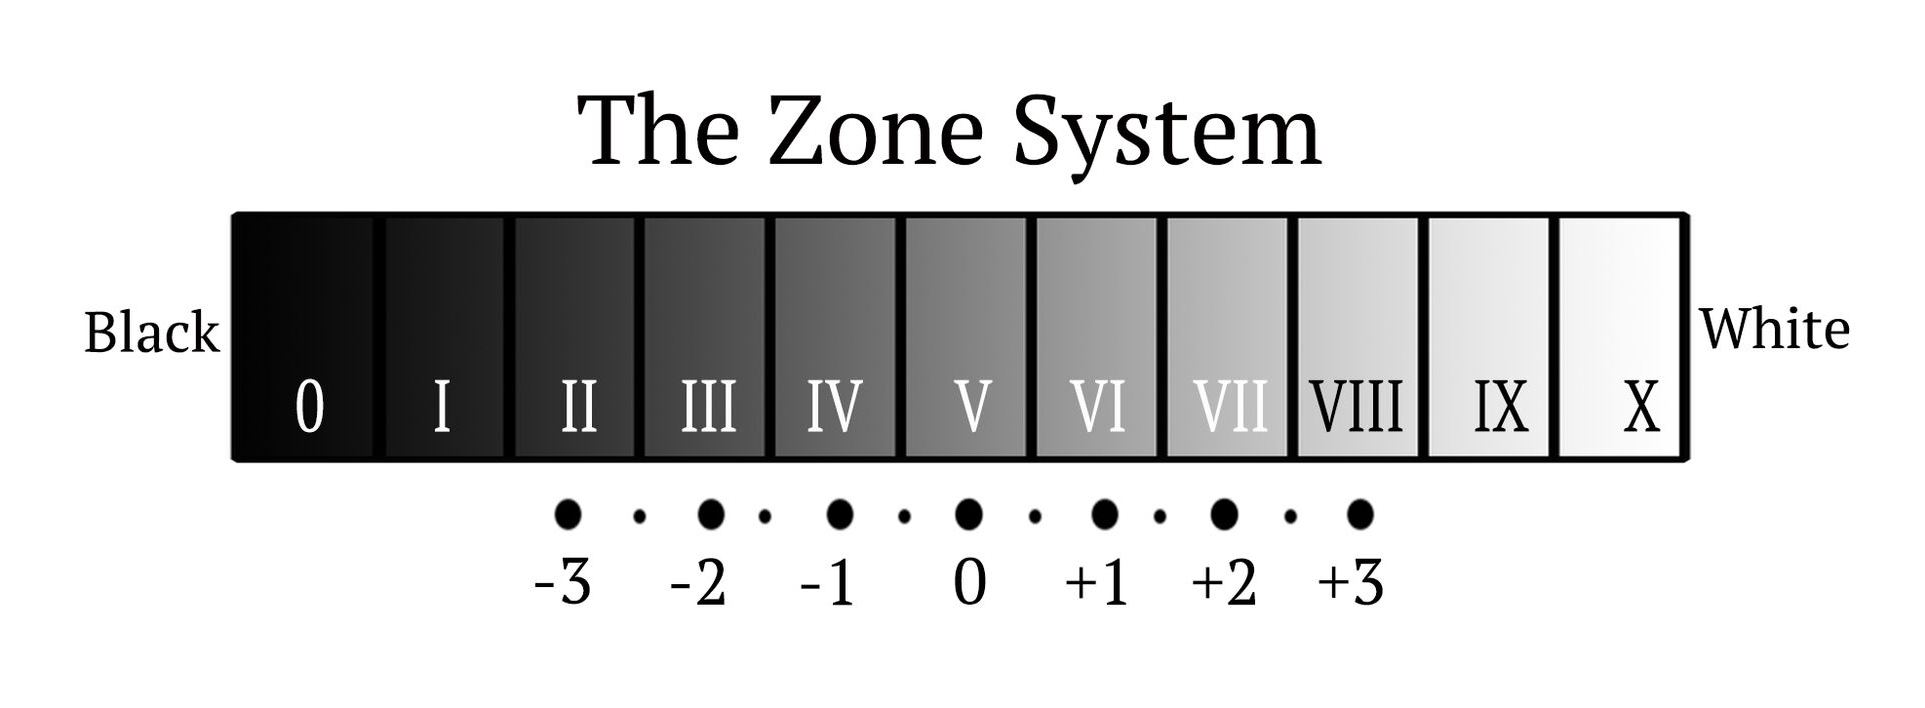 The Zone System And Digital Photographer Camera Diagram My Blog Since We Are All Connected So Easily To Internet There Also Plenty Of Sites Explaining In Implicit Detail I Want This Be